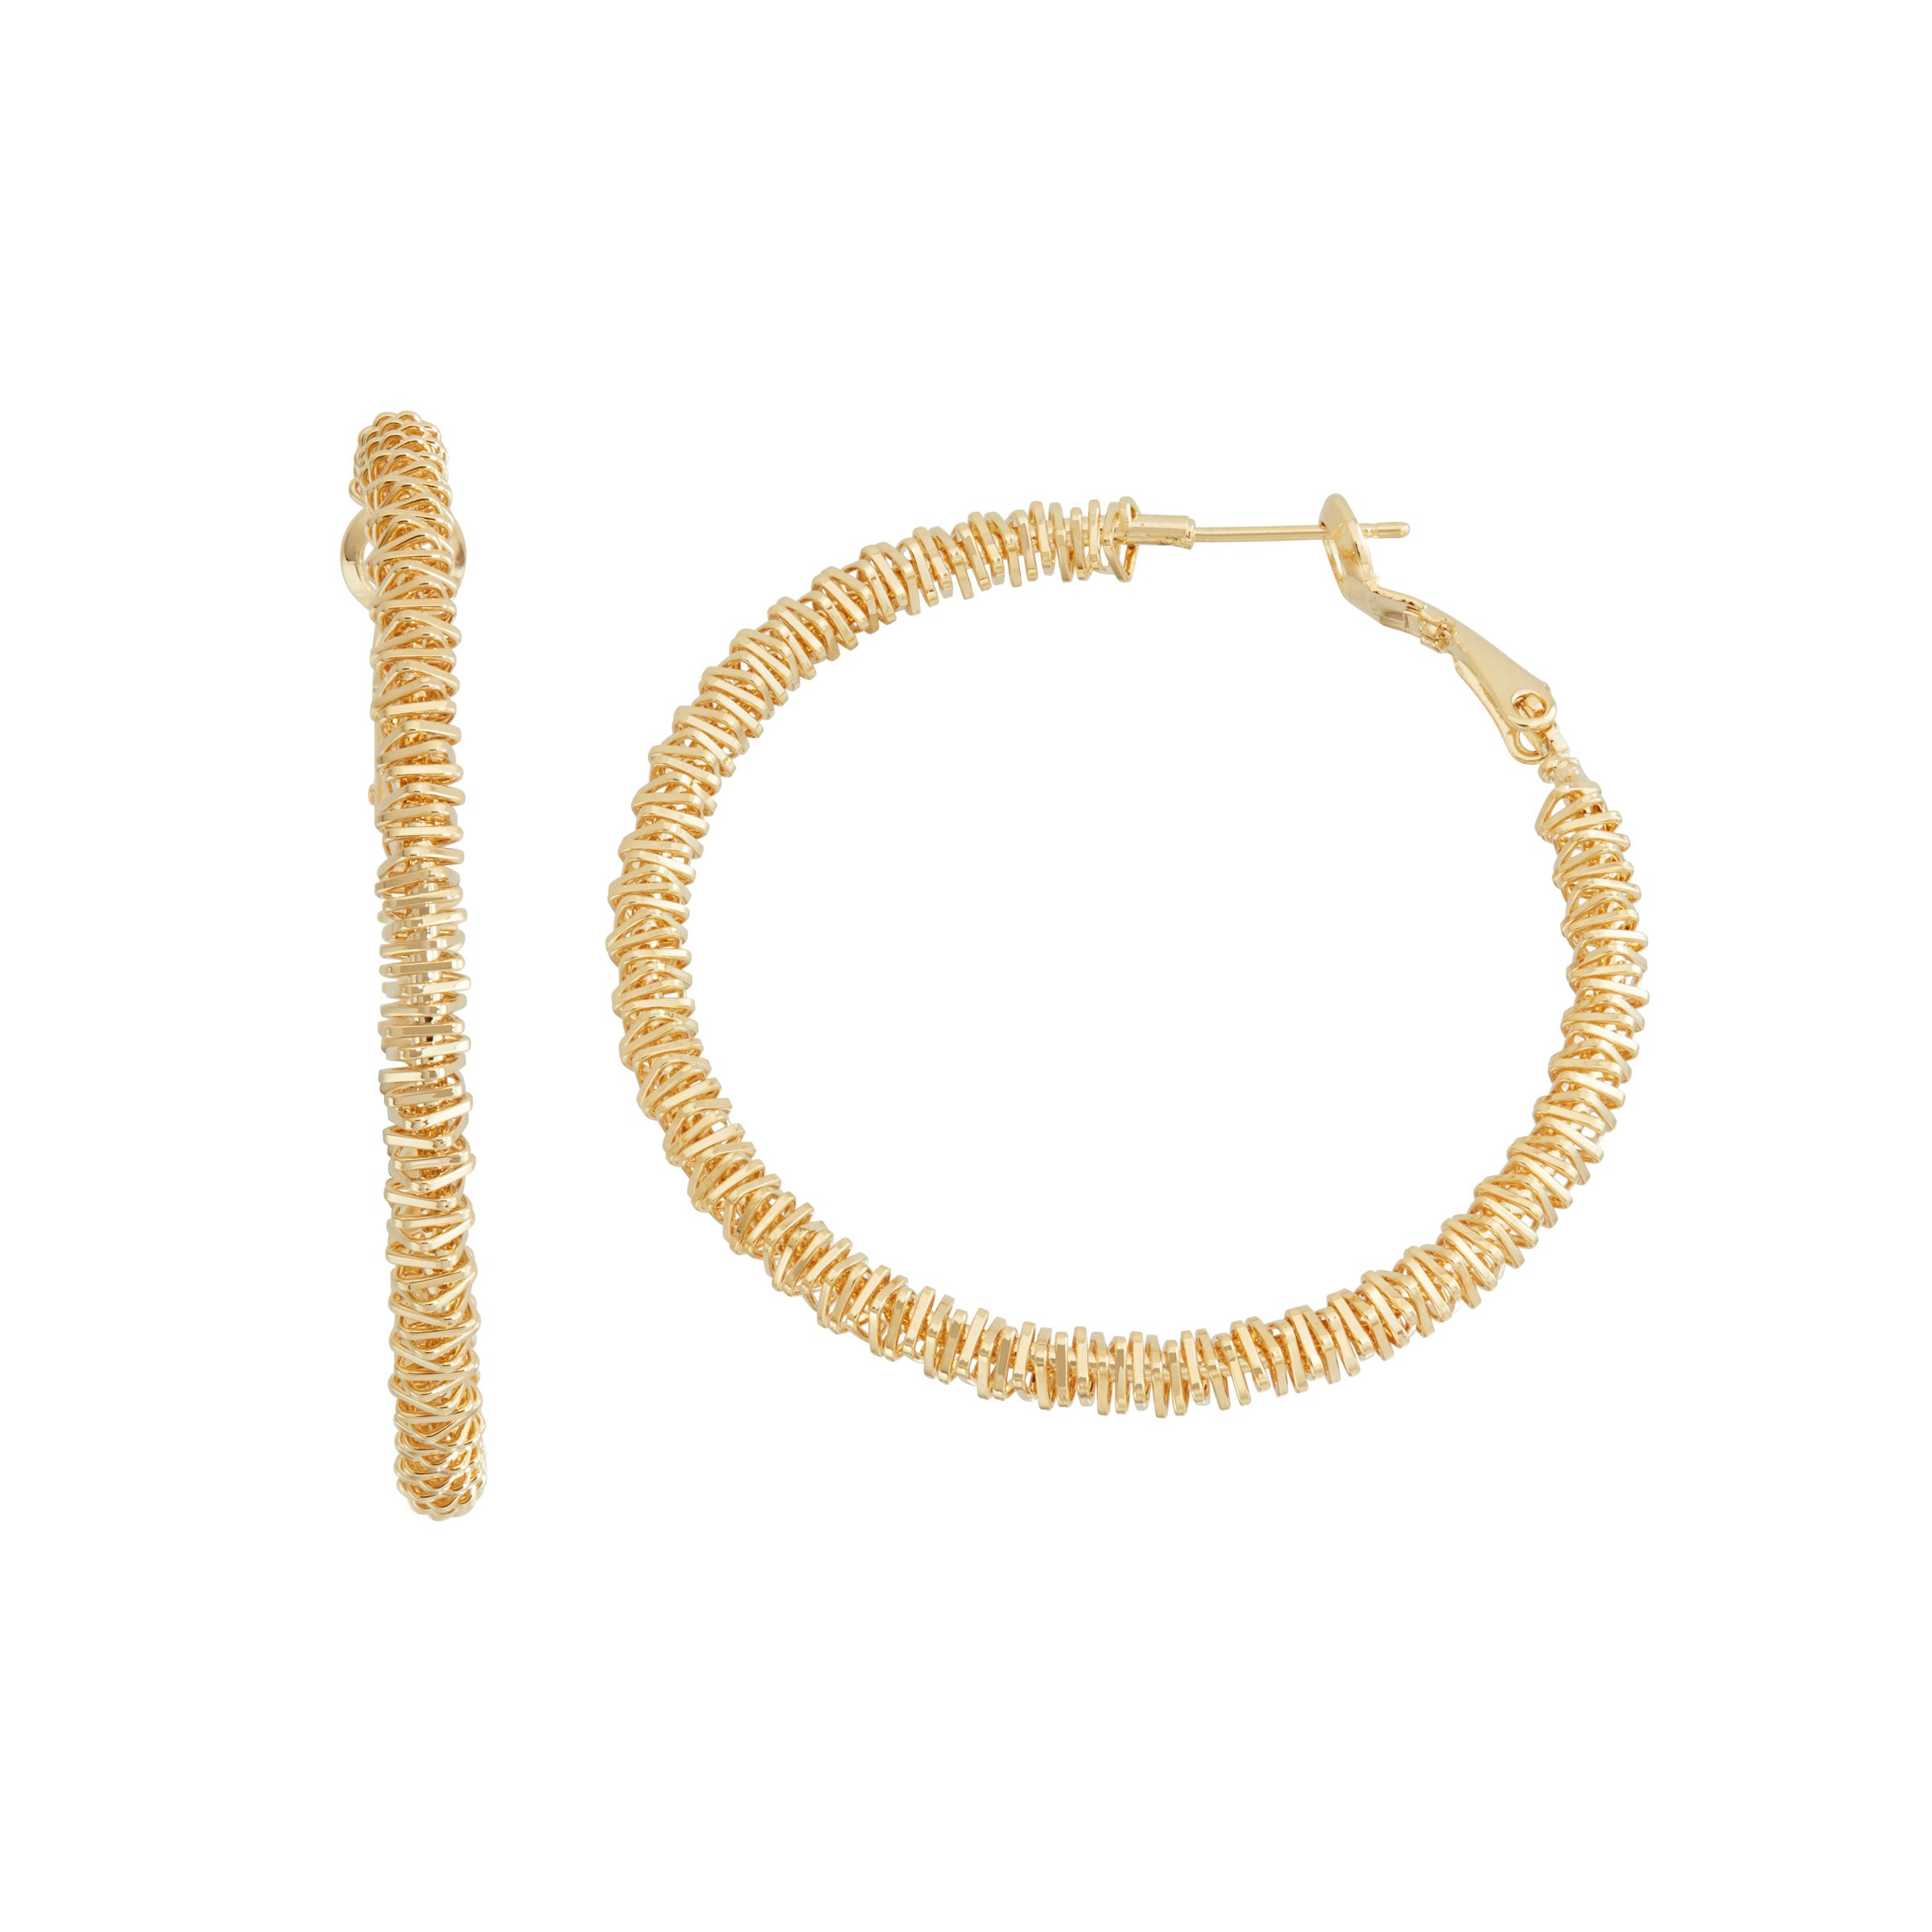 Textured Hoop Earrings, 1.95 Inches, Yellow Gold Plated